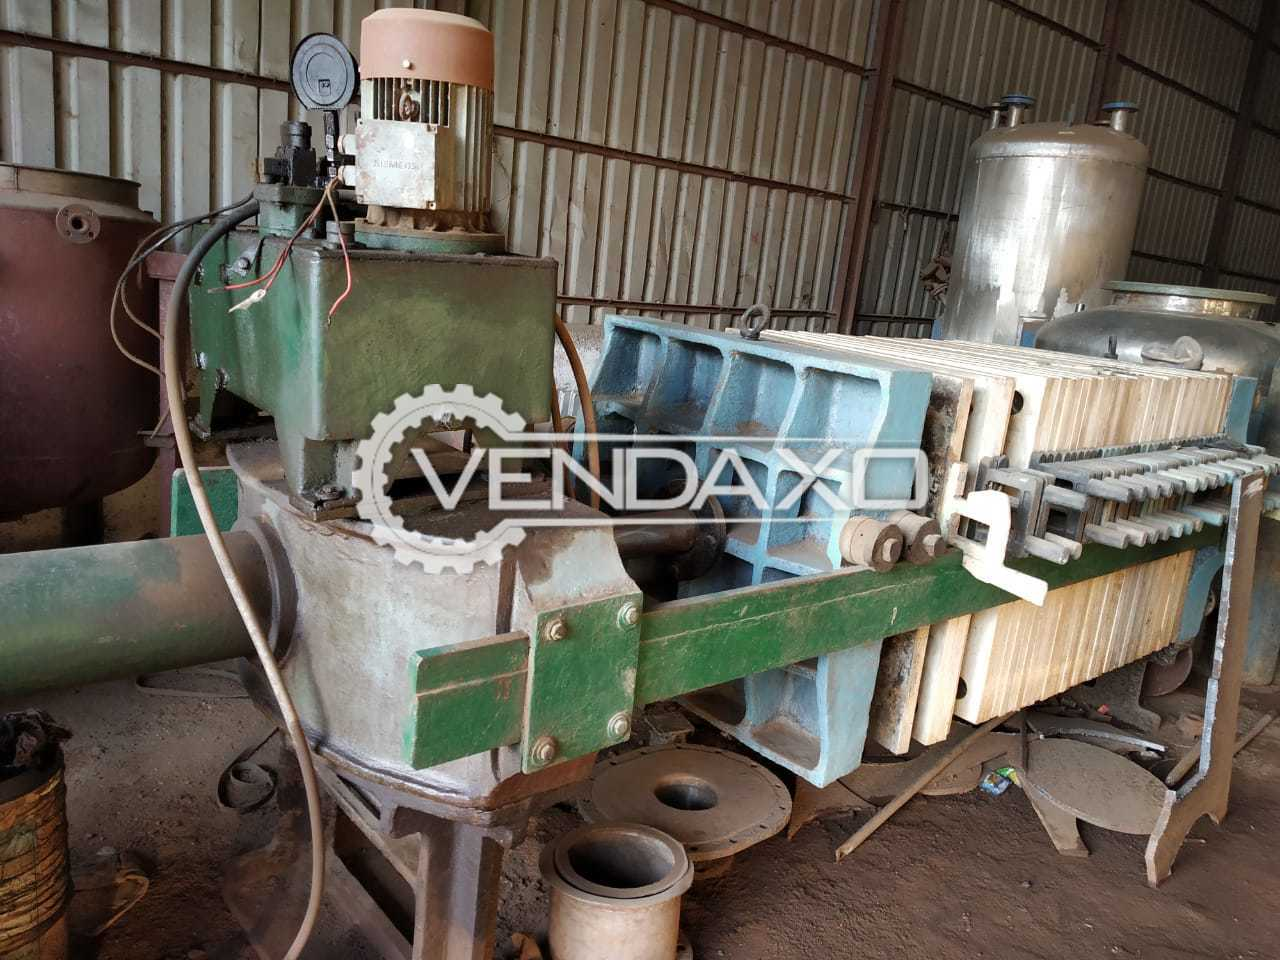 Indian Make Hydraulic PP Filter Press - 36 Inch, 40 Plates